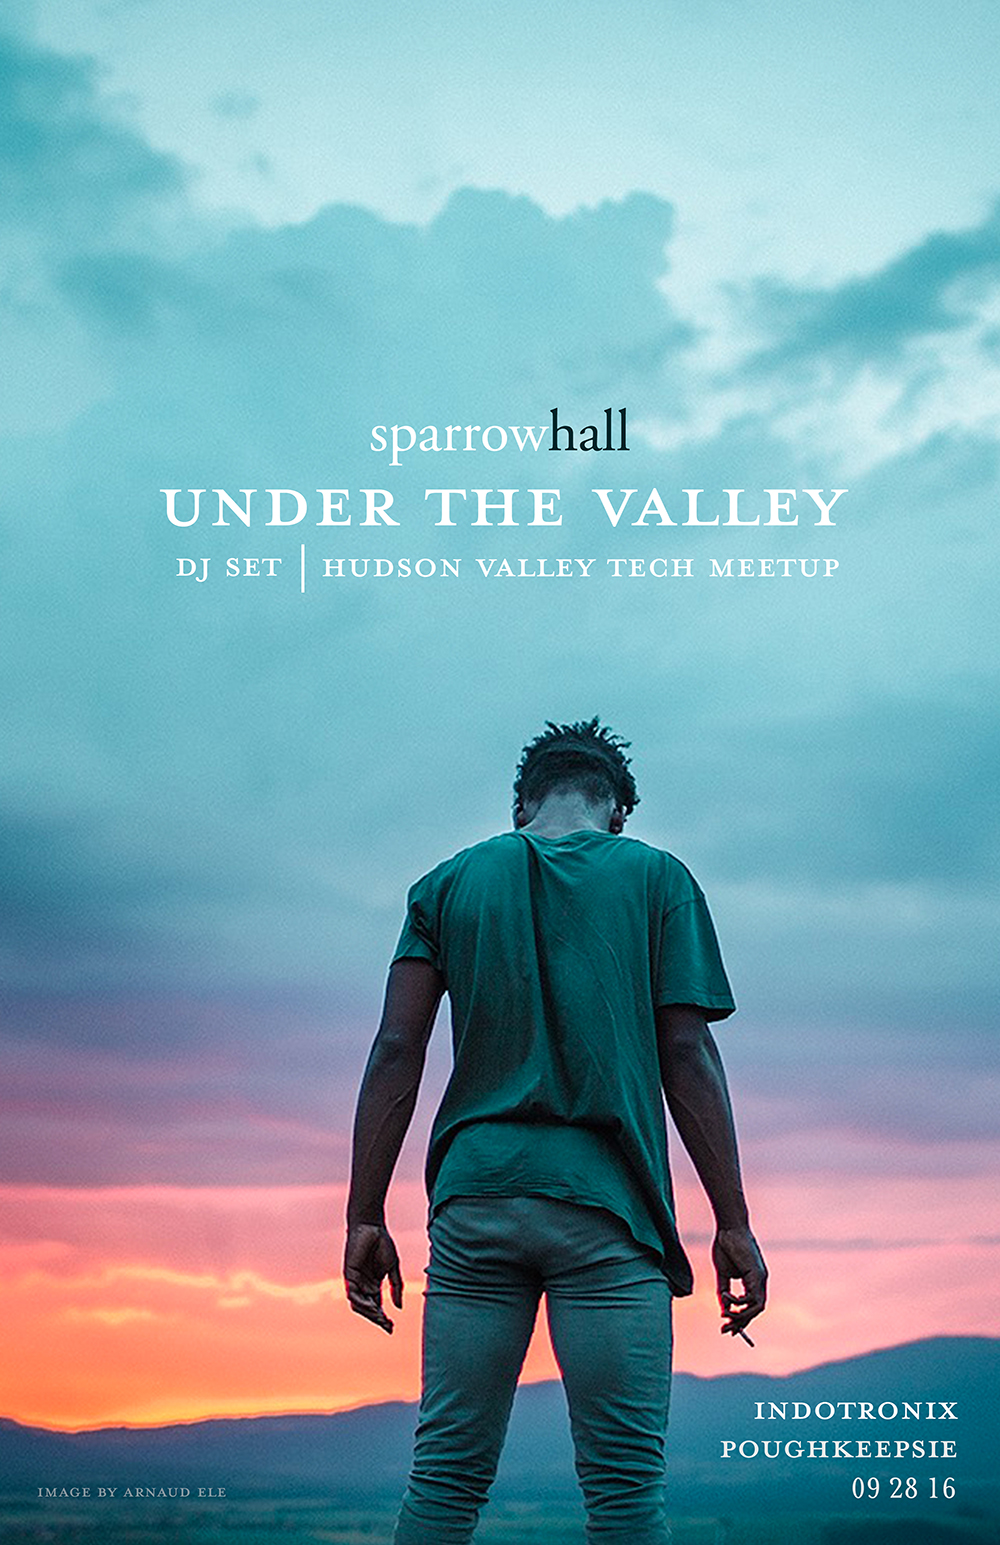 Under the Valley | DJ Set | Hudson Valley Tech Meetup